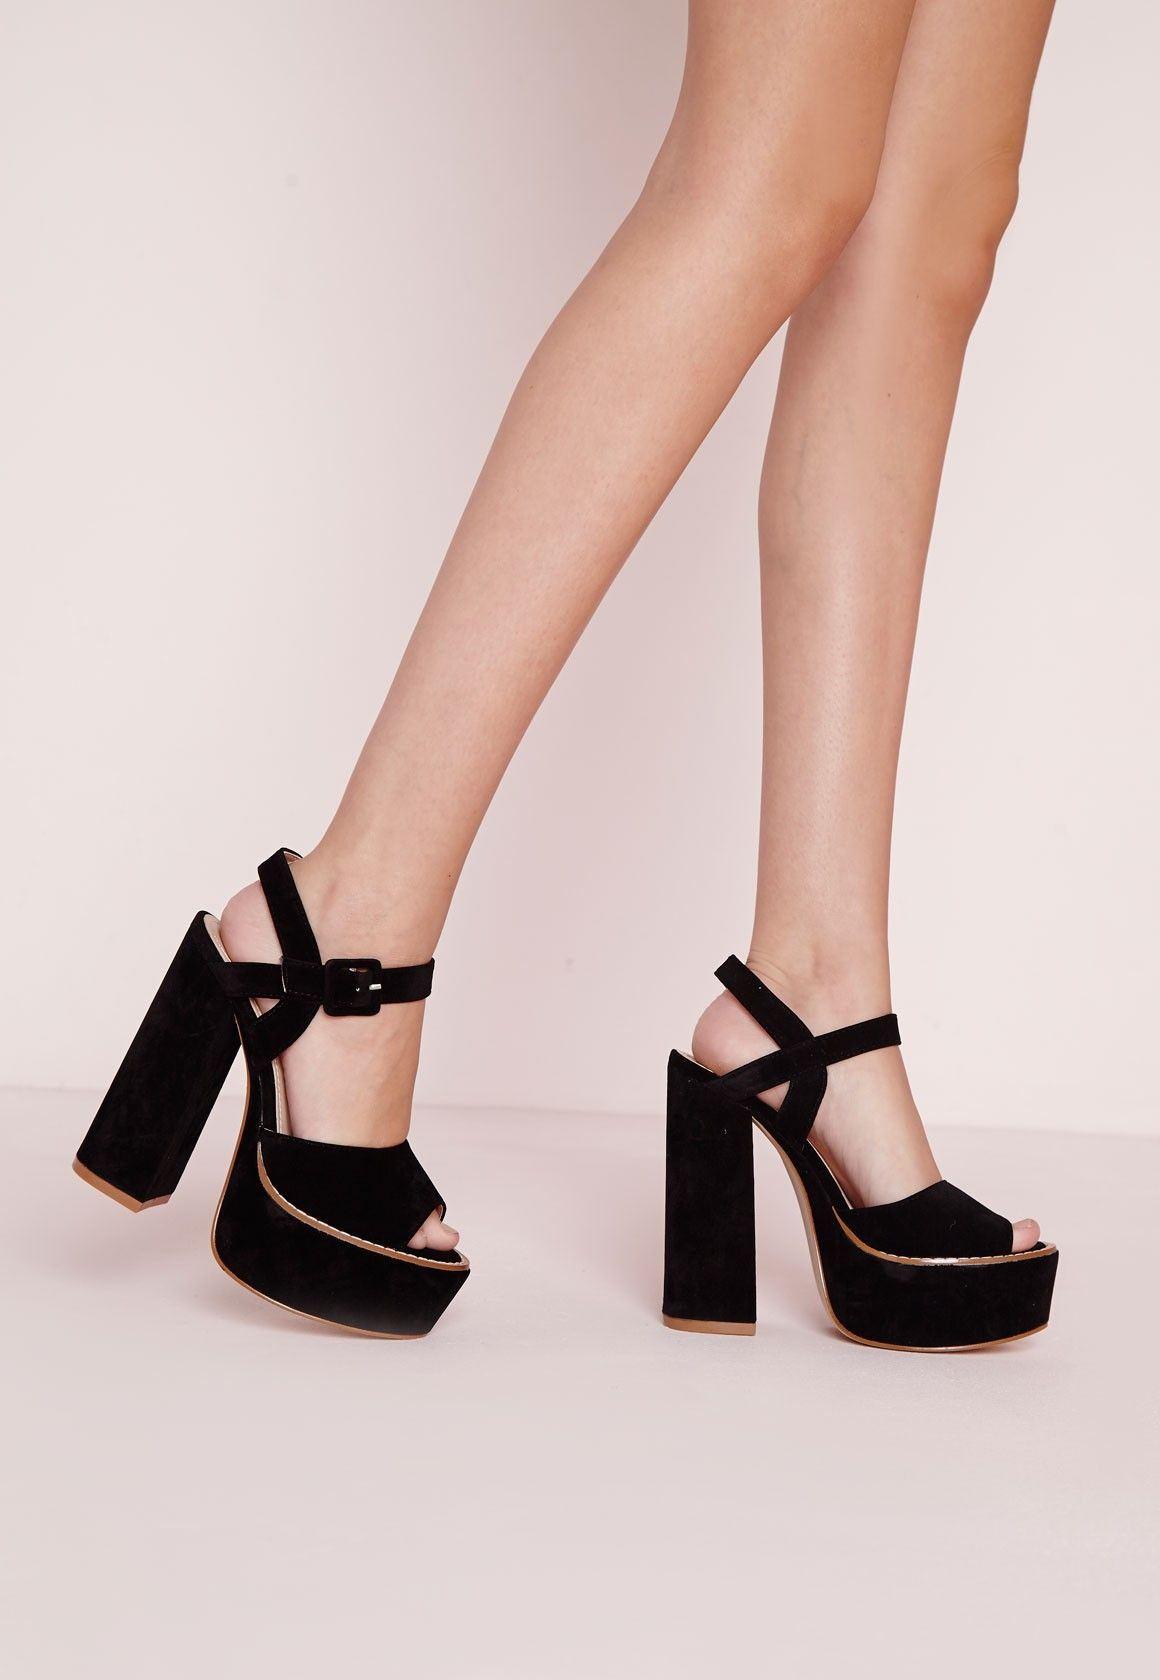 9cc0592fb58a 70 s Platform Block Heel Sandals Black - Shoes - High Heels - Missguided